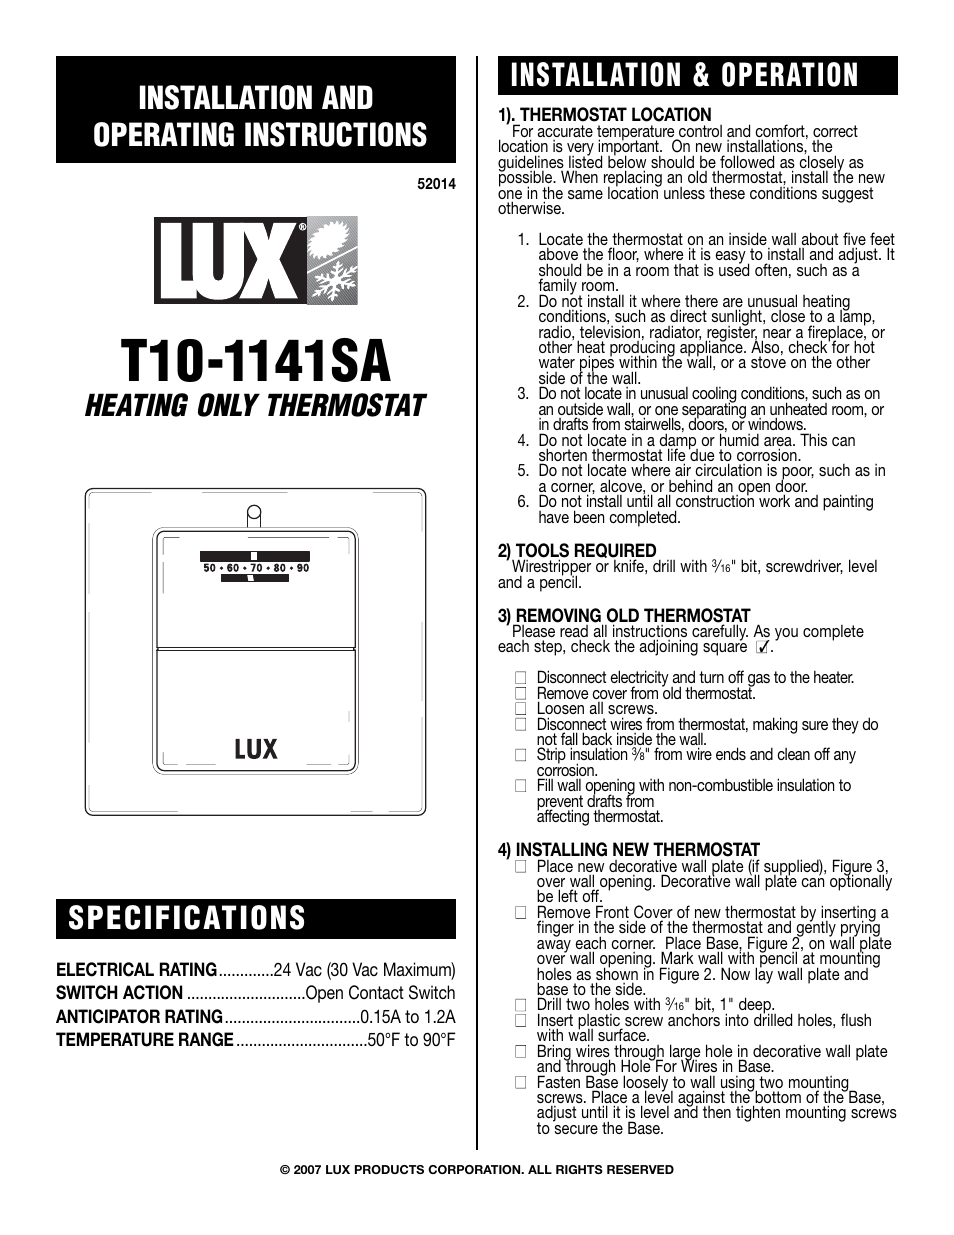 Lux Products T10-1141SA User Manual | 2 pages